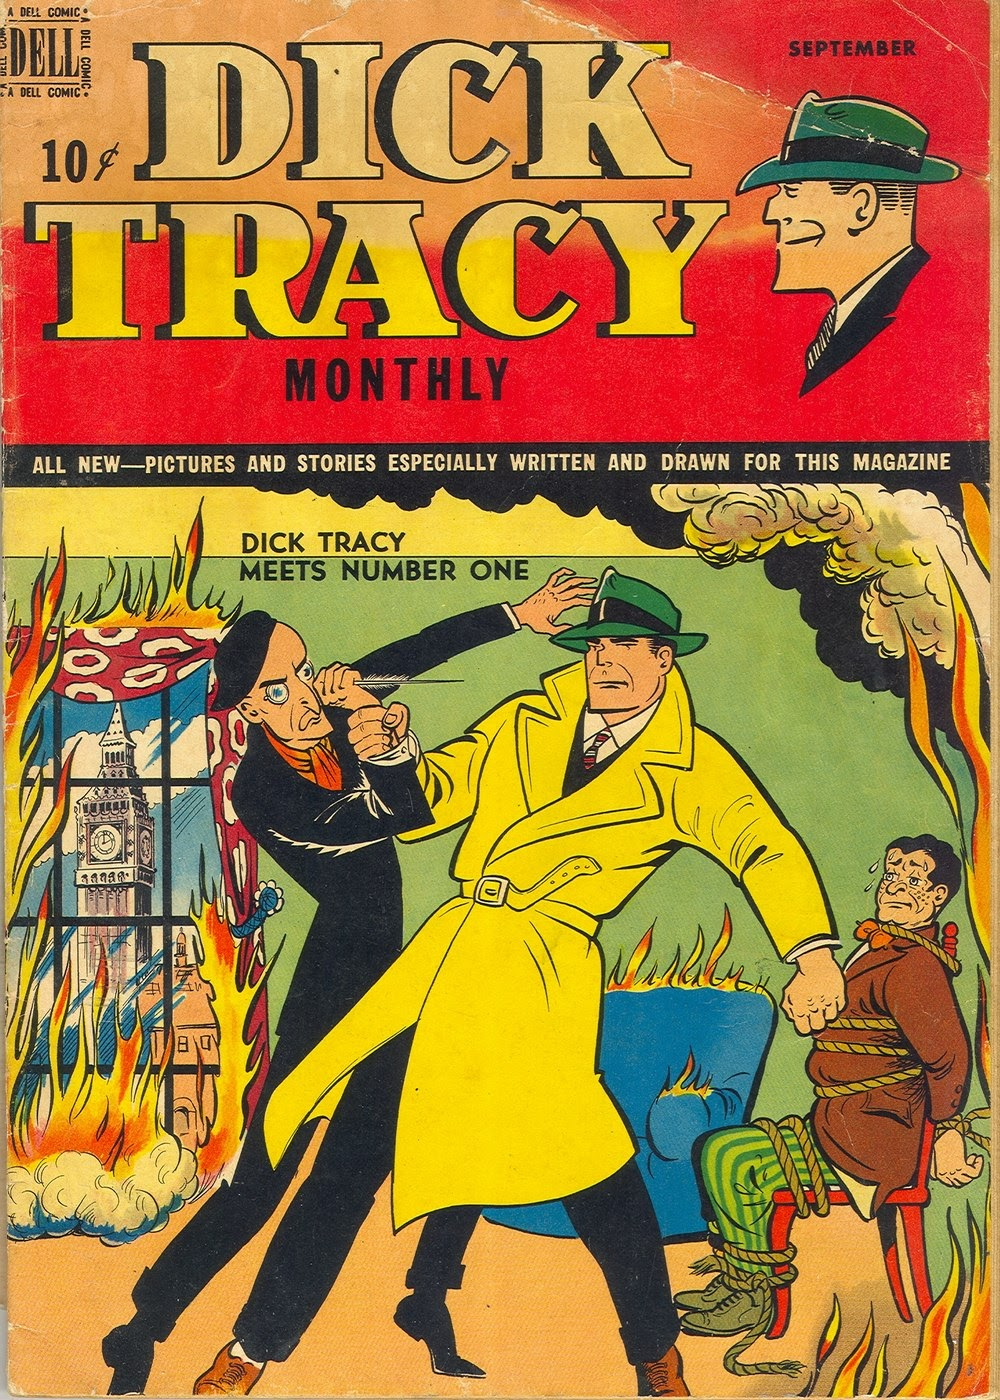 Dick Tracy Monthly 21 Page 1